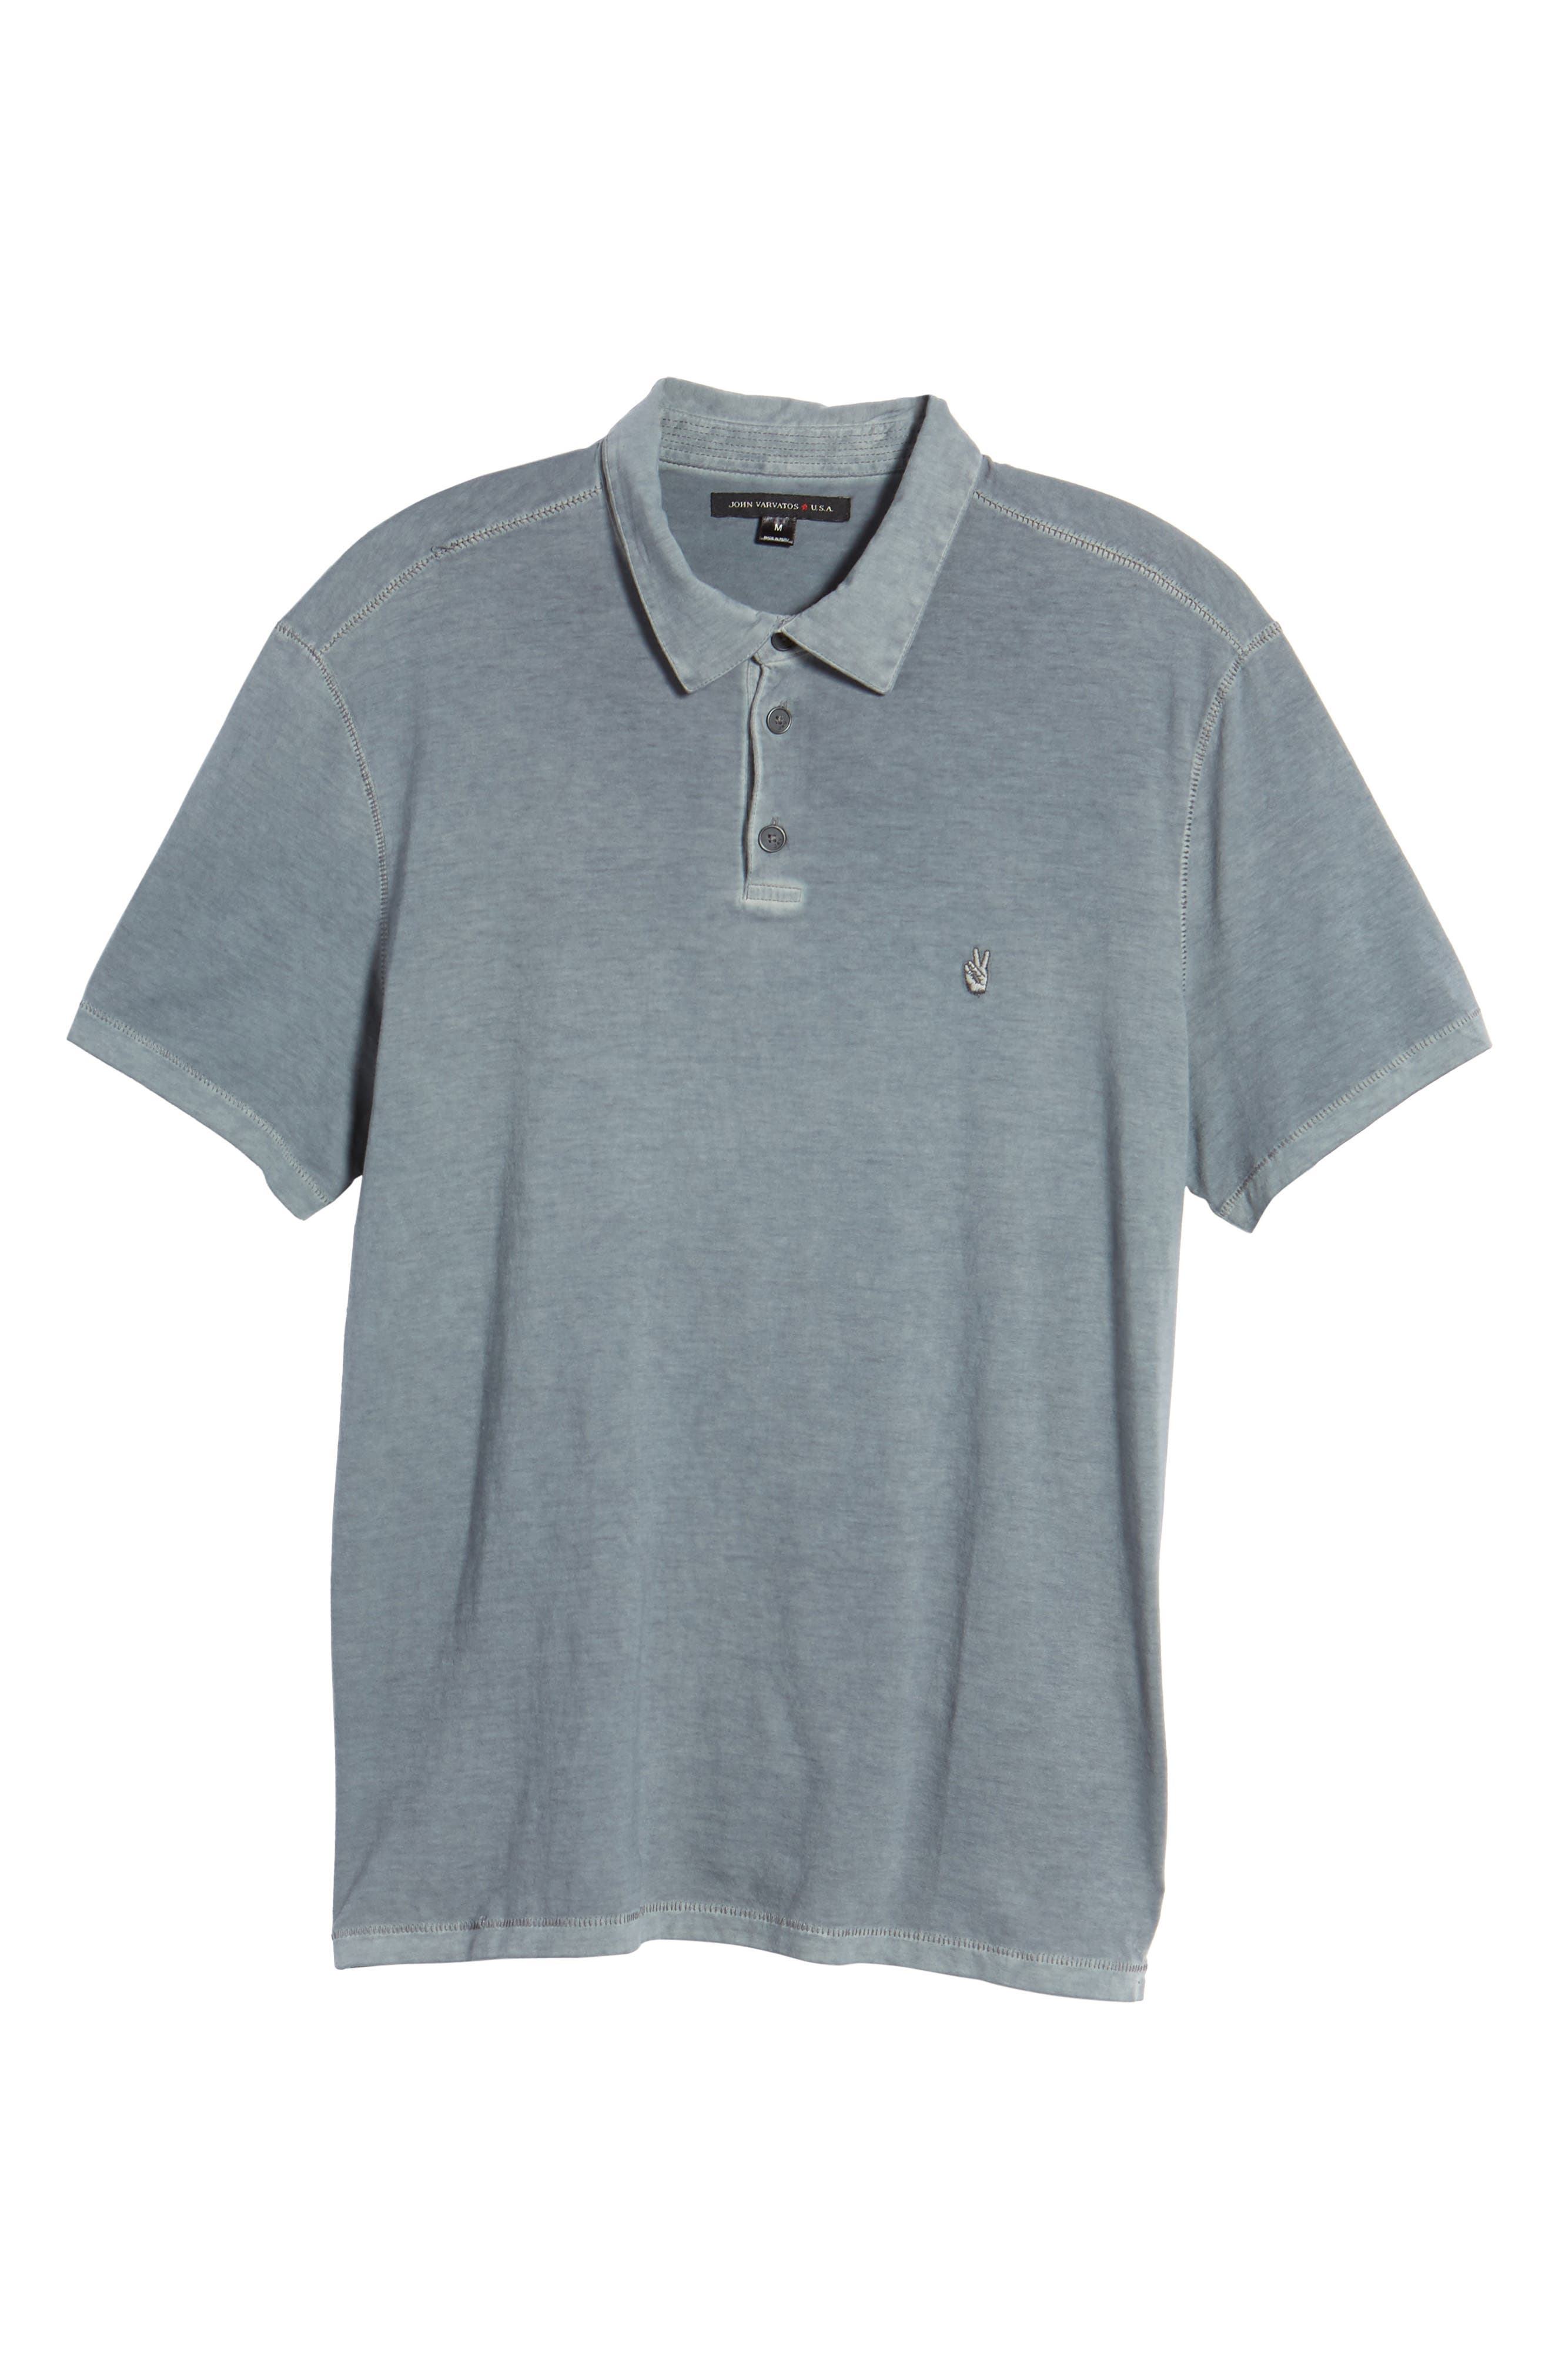 Alternate Image 1 Selected - John Varvatos Collection Regular Fit Polo